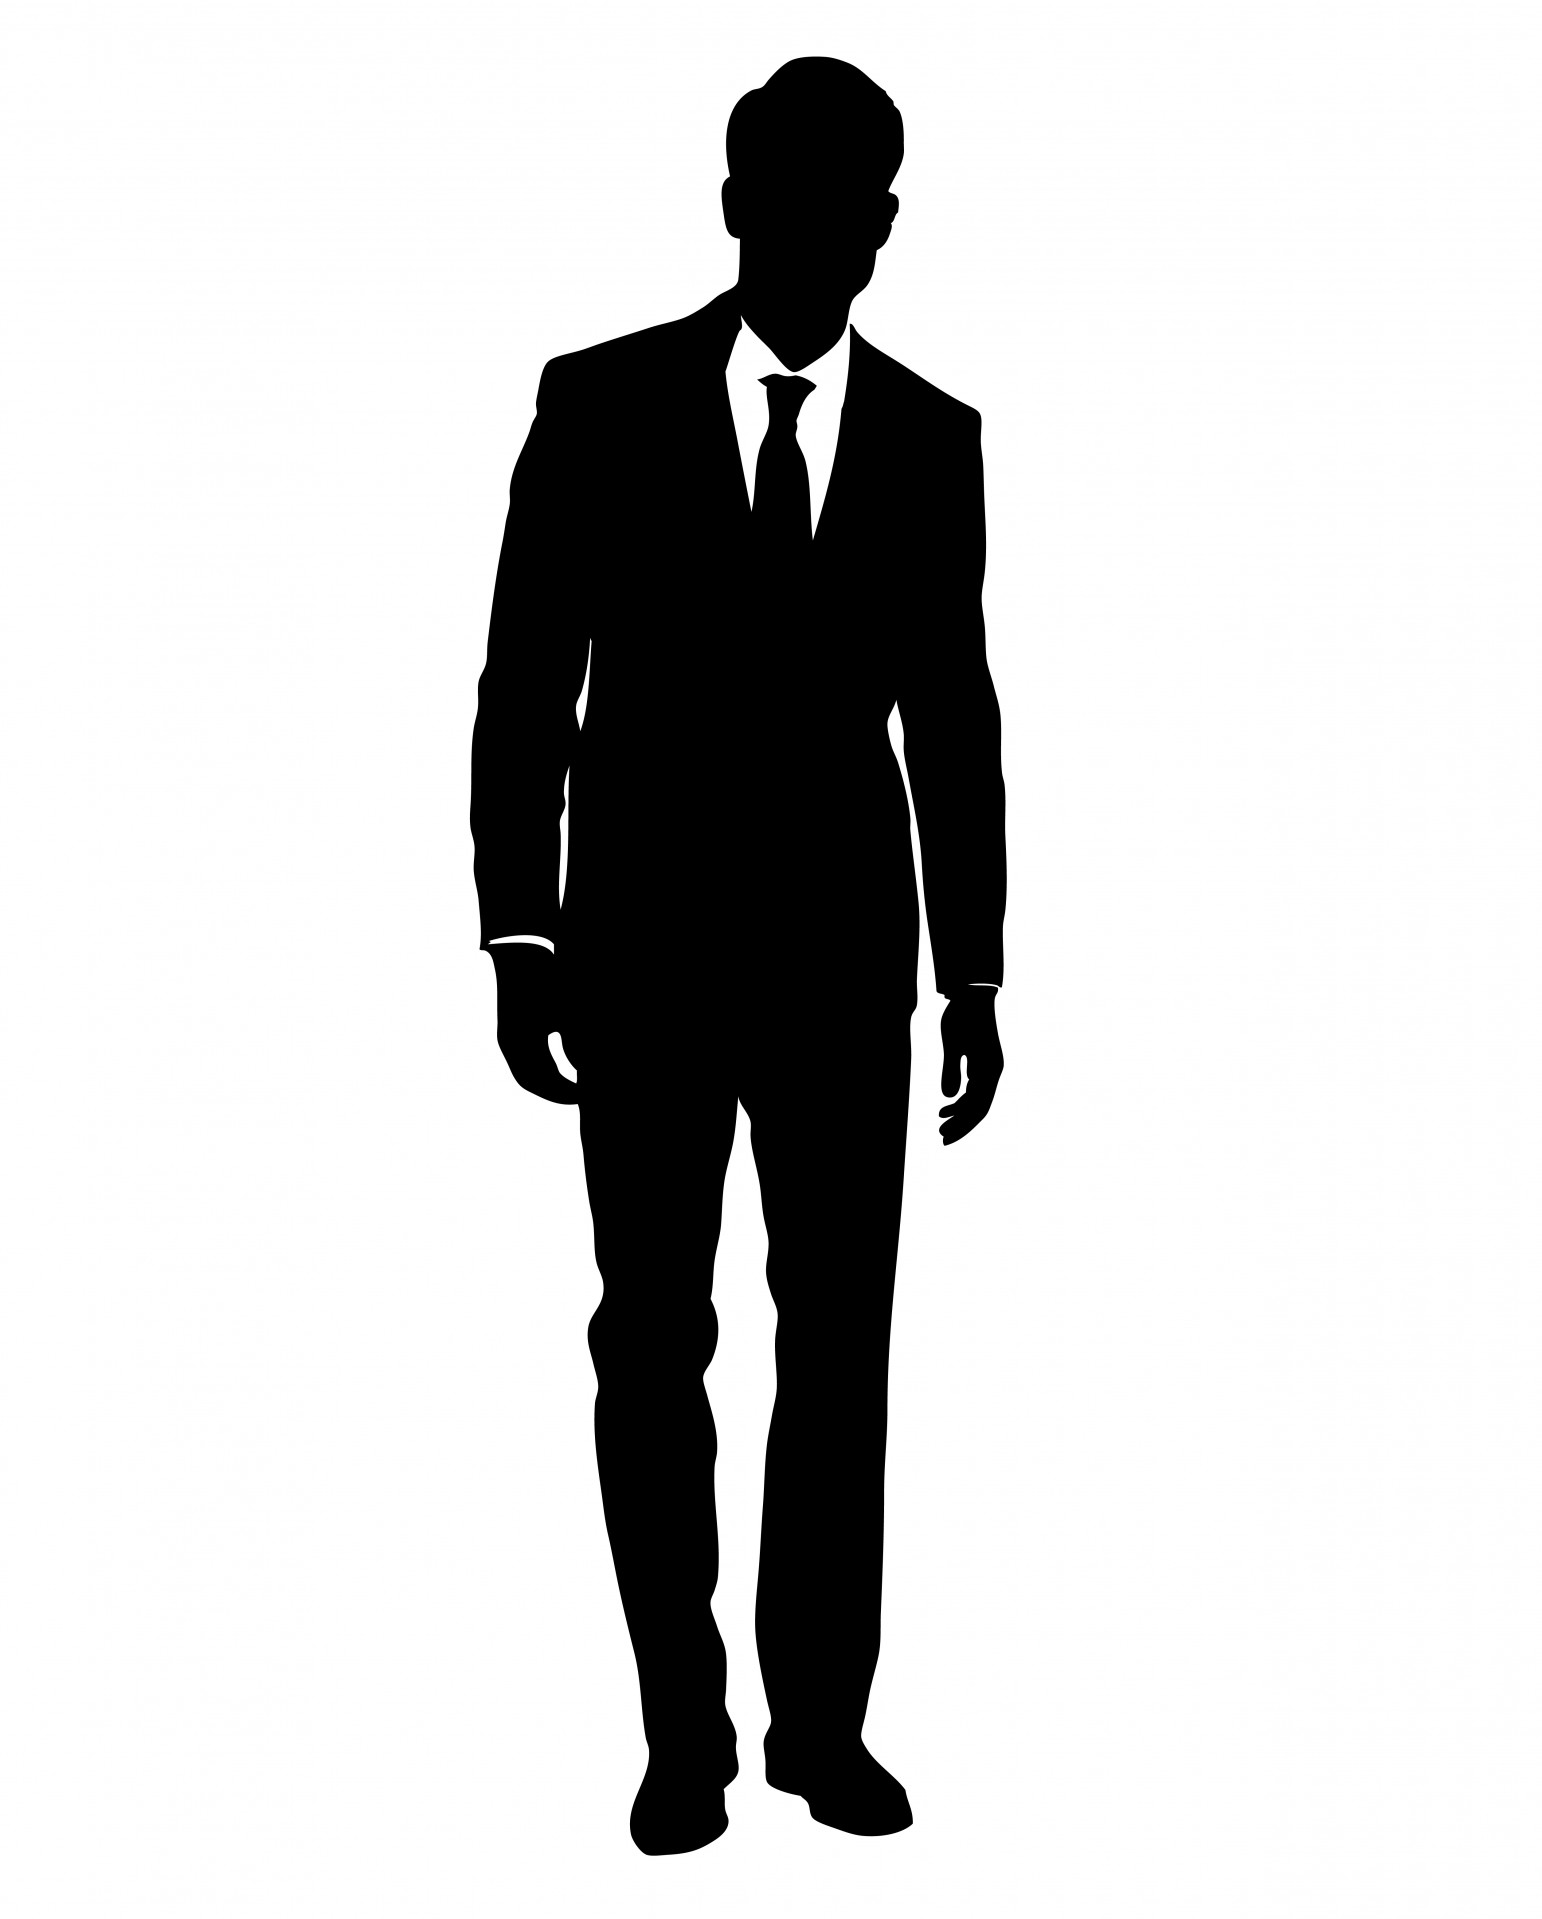 Black Man In Suit Clipart - Clipart Kid